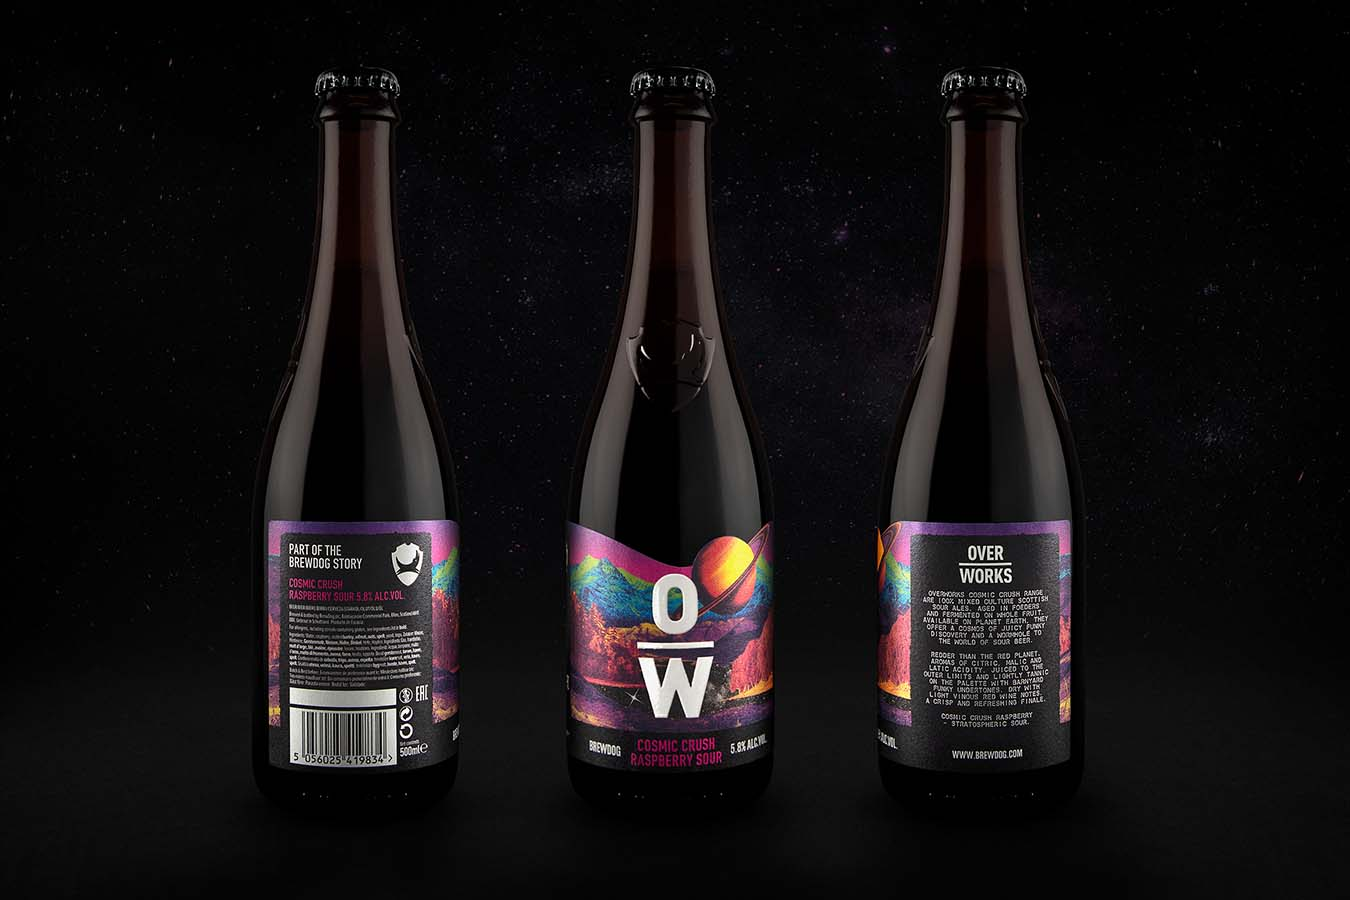 BrewDog OverWorks, Cosmic Crush Series